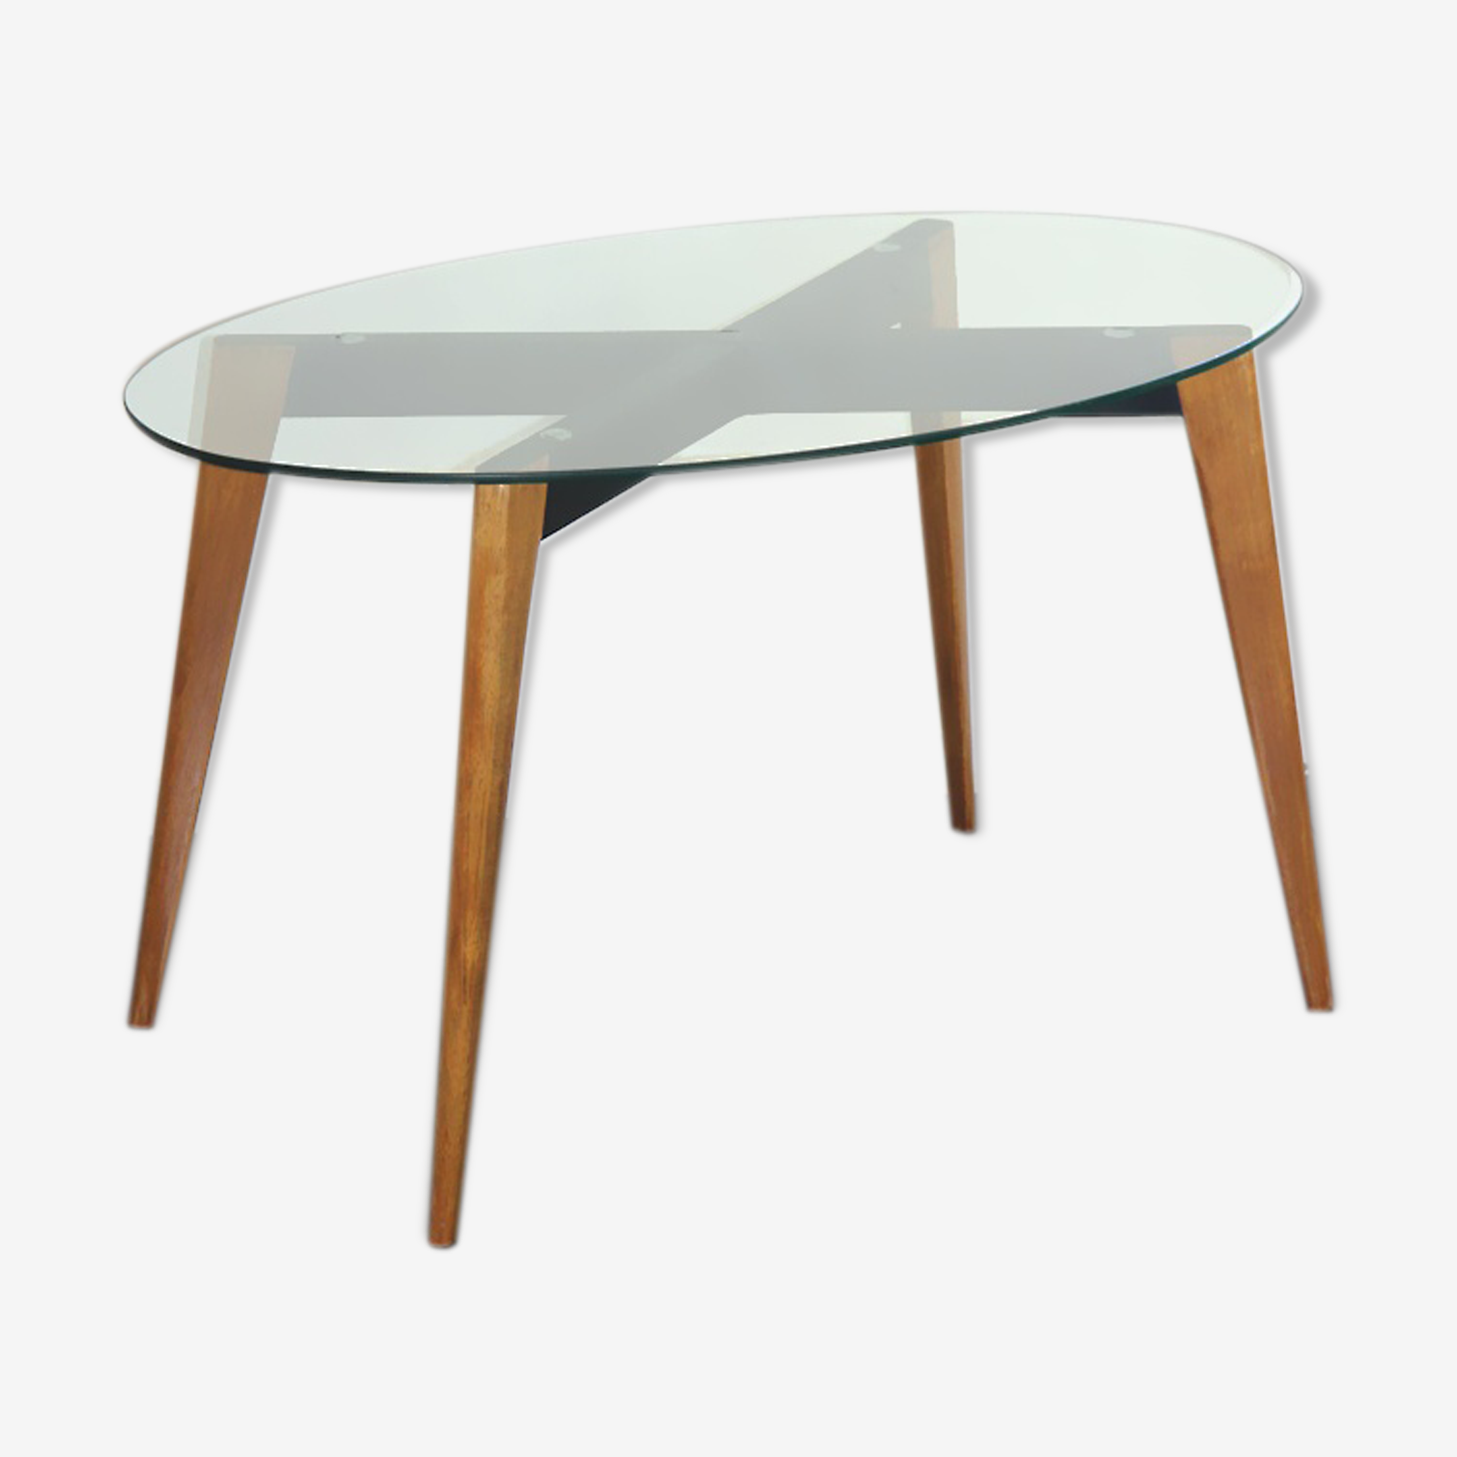 Wooden and glass oval coffee table